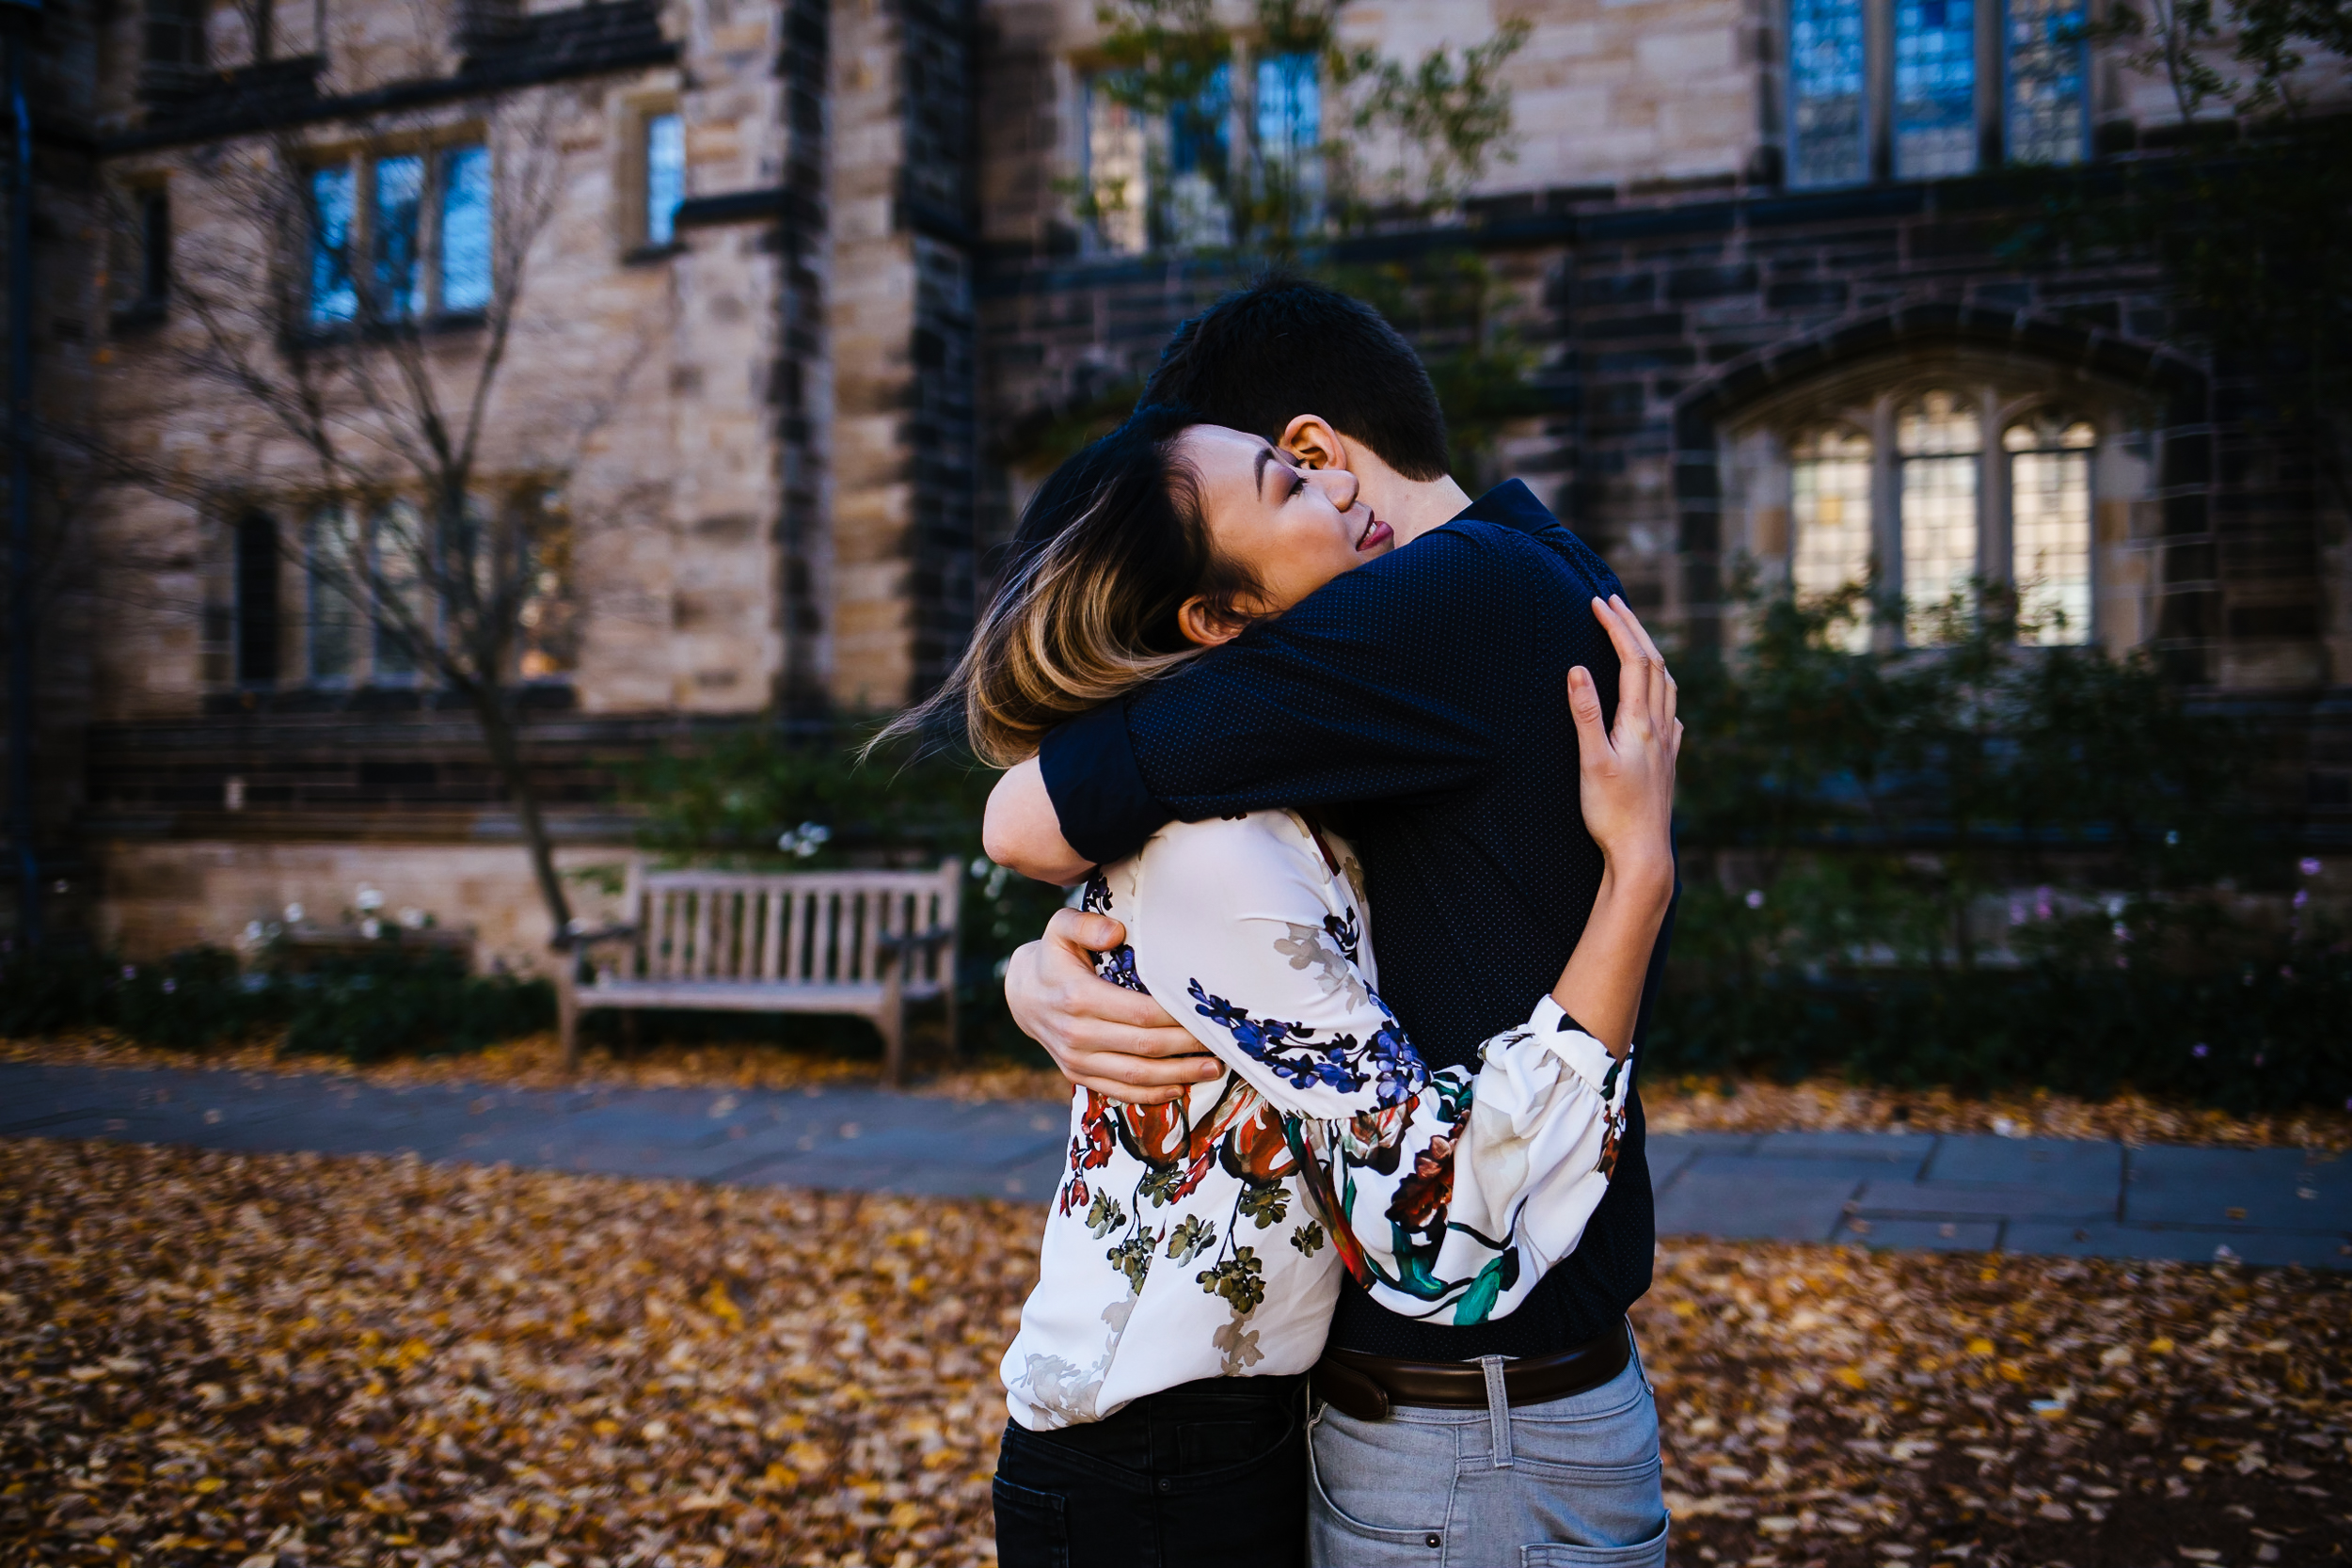 new haven Connecticut engagement photography, new haven Connecticut engagement session, new haven ct engagement photos, engagement session in new haven connecticut, yale university engagement photography, yale university engagement session, engagement session at yale university, engagement photos, engagement photos ideas, engagement photos inspiration, what to wear for engagement photos, unique engagement session ideas, urban engagement photos, city engagement photos